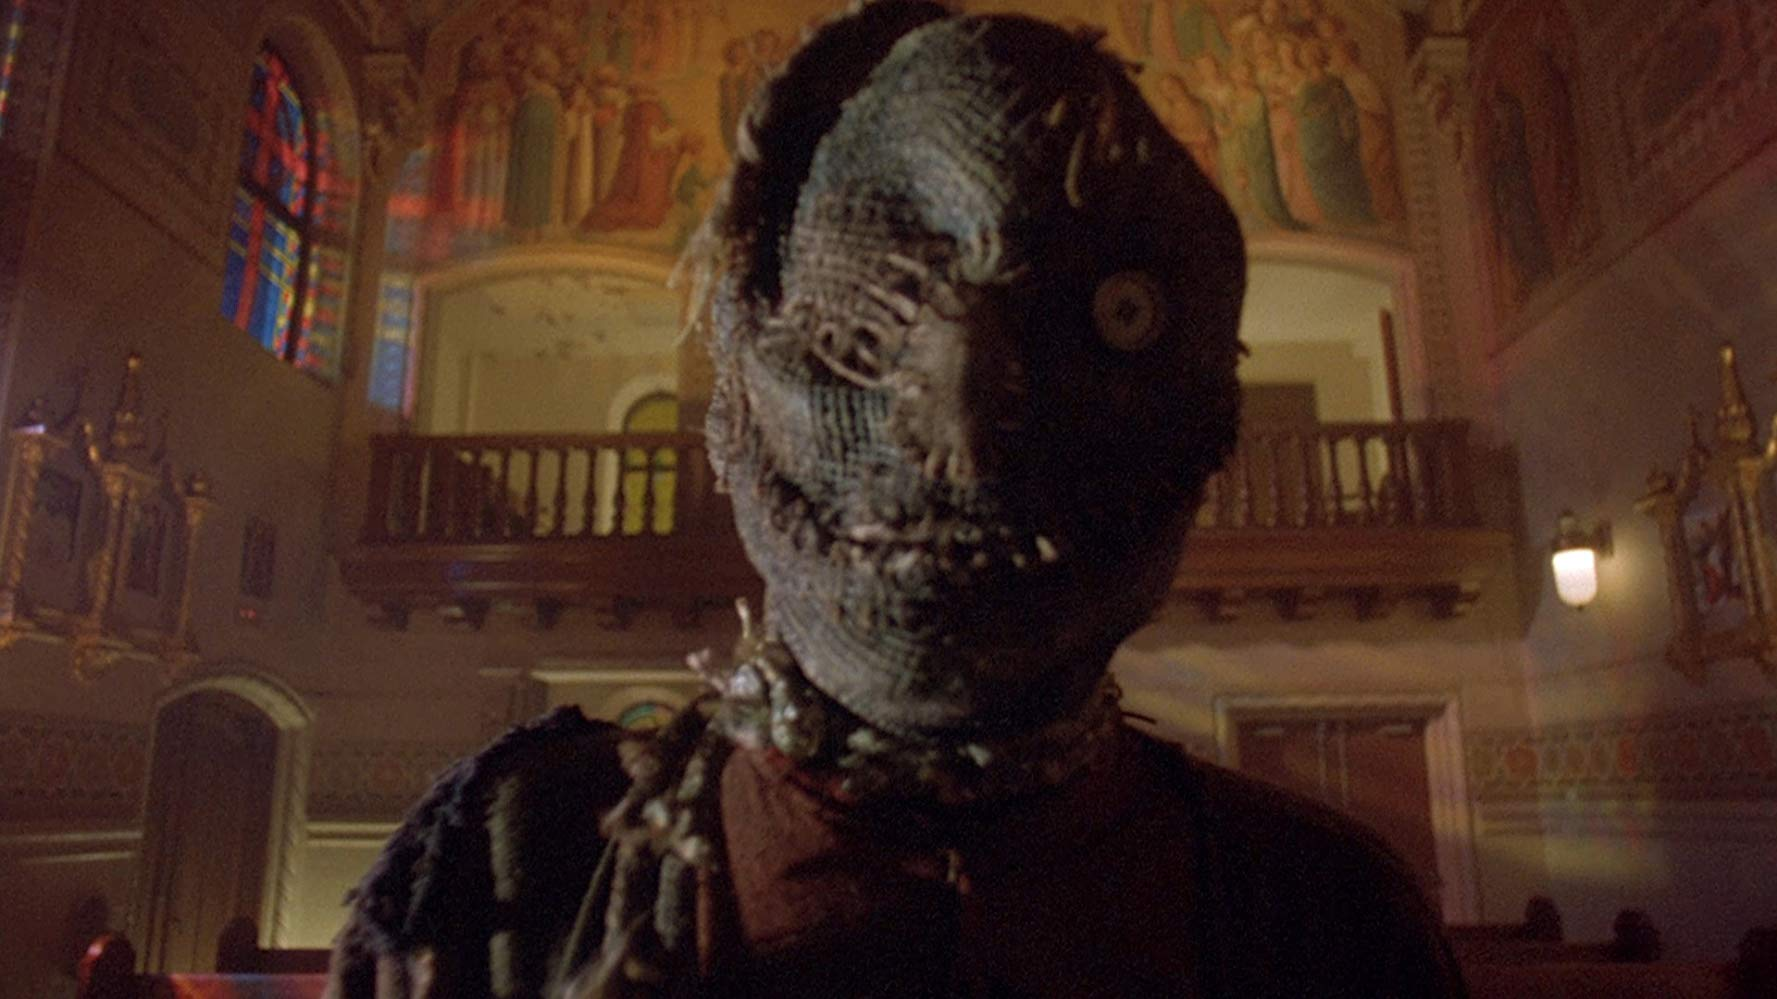 The possessed scarecrow in Night of the Scarecrow (1995)